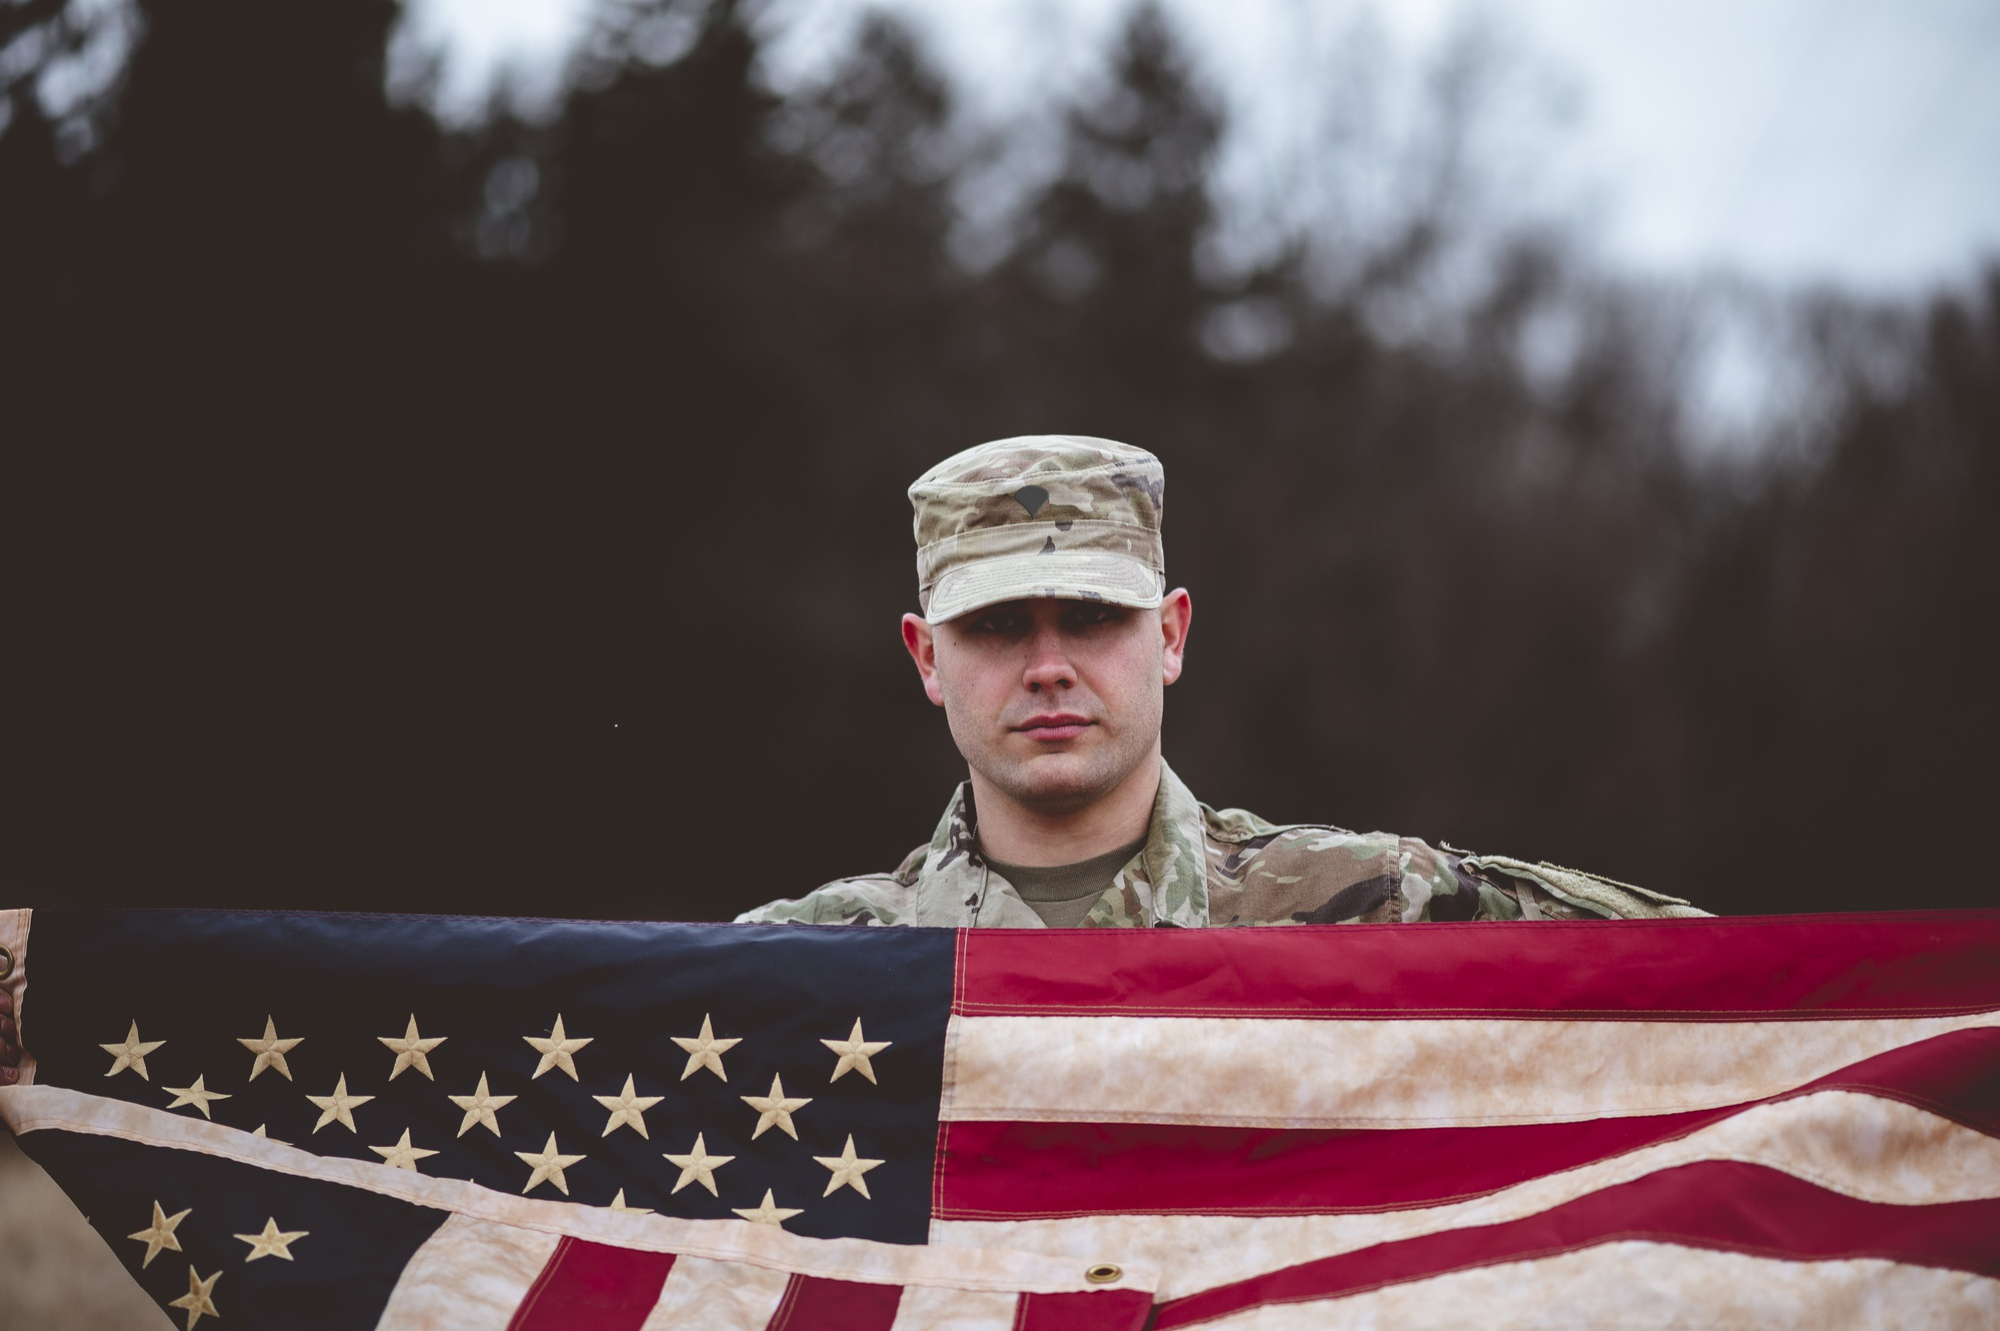 shallow-focus-shot-american-soldier-holding-american-flag